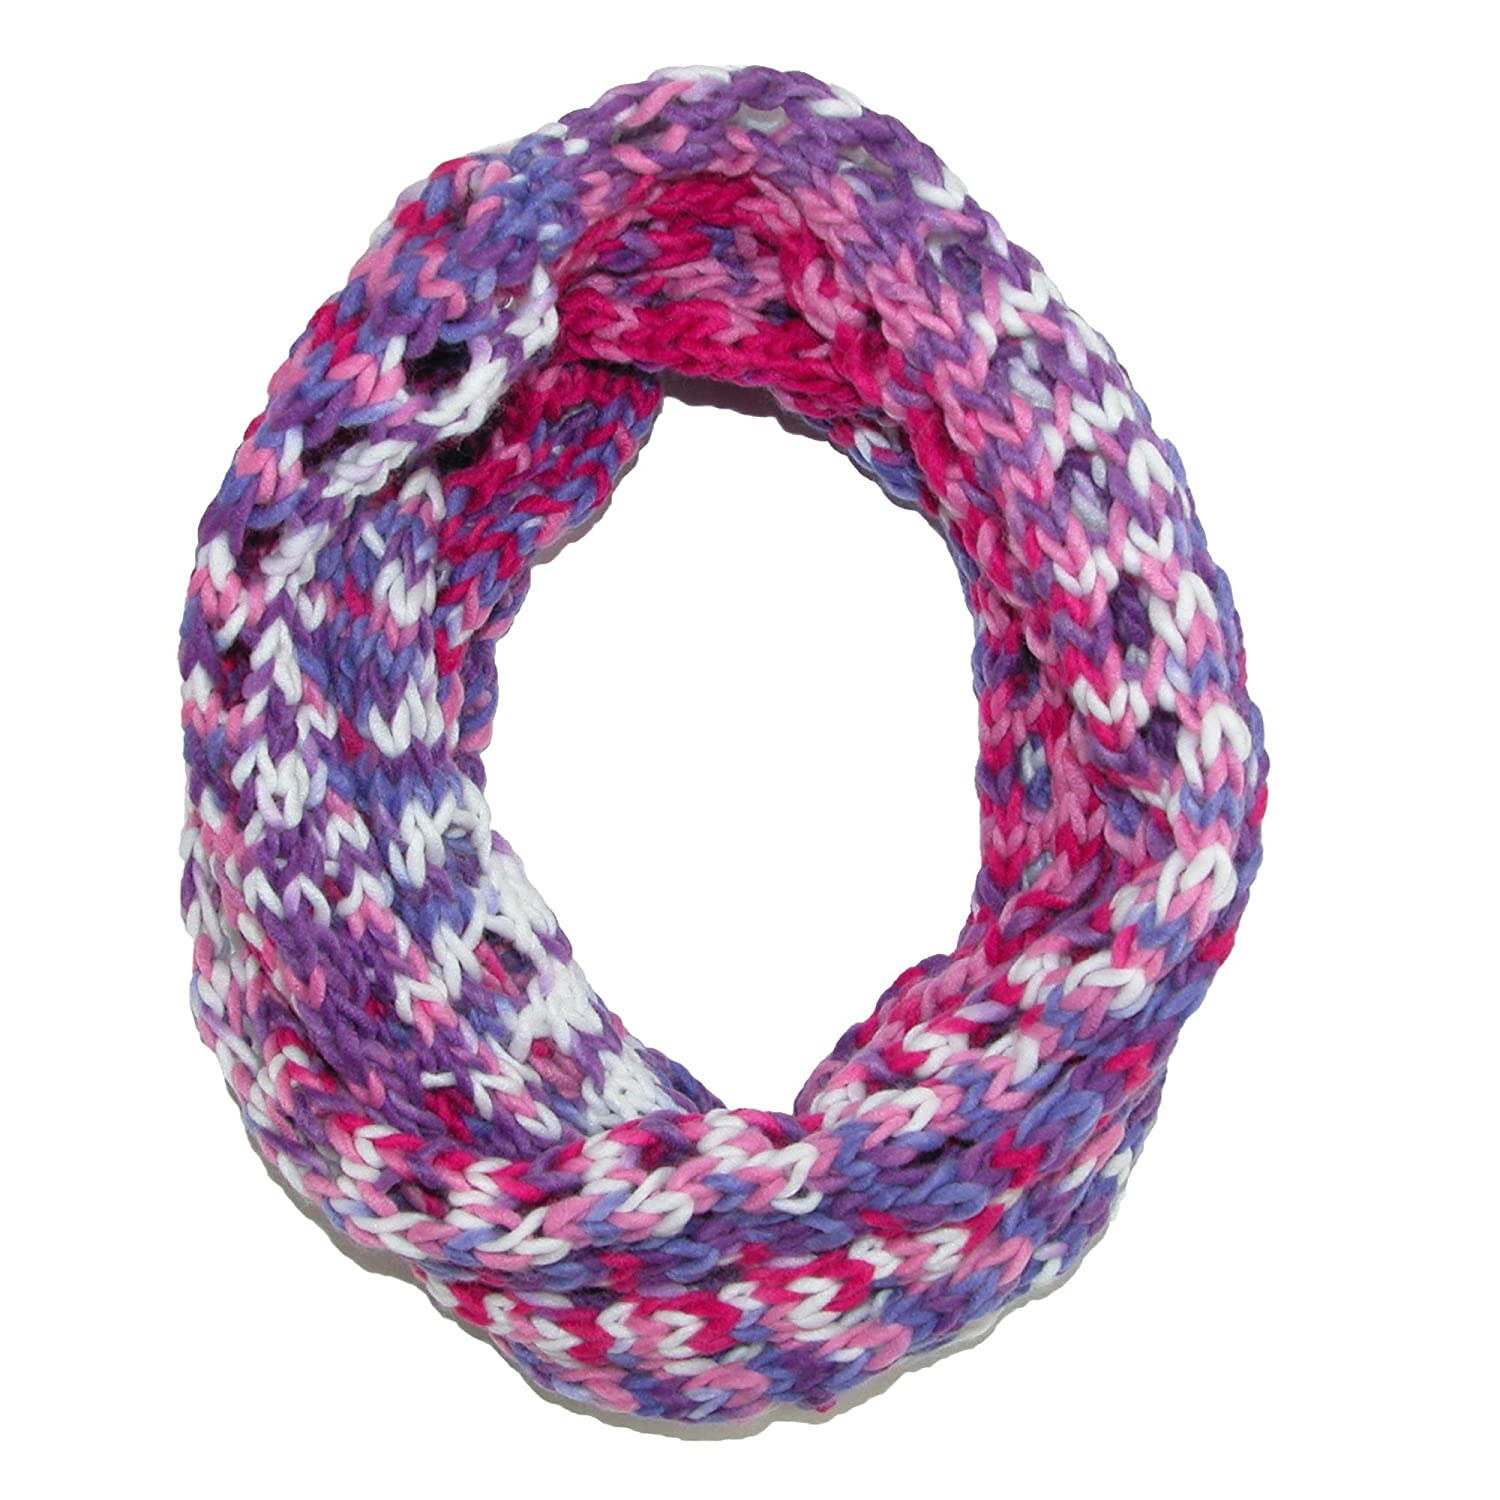 Grand Sierra Kid's Spacedye Knit Infinity Scarf, Pink